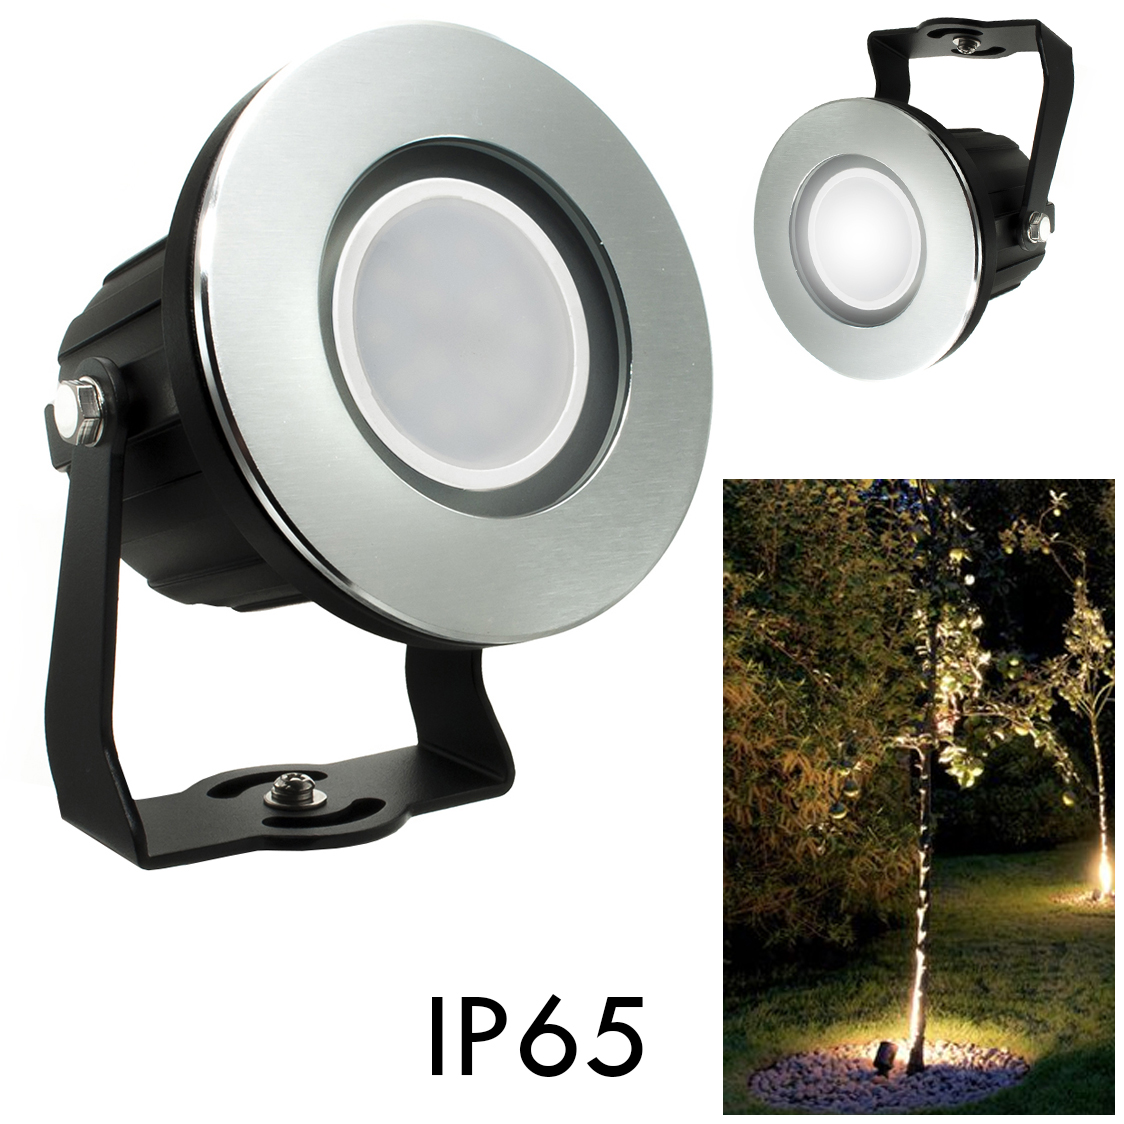 Spotlight spot swivel LED 8W GU10 segnapassi RGB light garden outside IP65